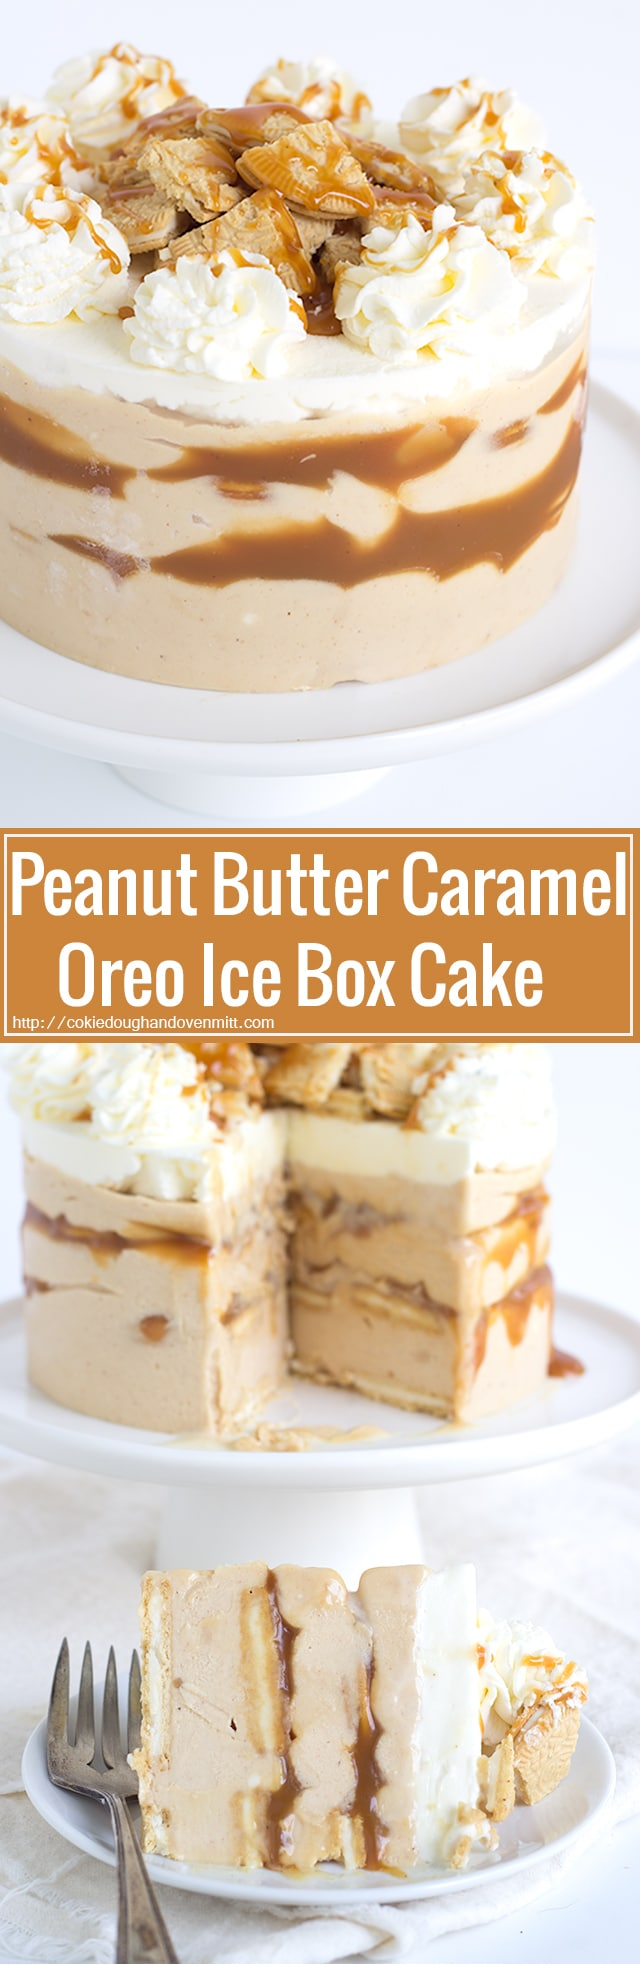 Peanut Butter Caramel Oreo Ice Box Cake - peanut butter caramel cheesecake layered with thin golden Oreo's and homemade caramel sauce. Perfect treat for any peanut butter lover.